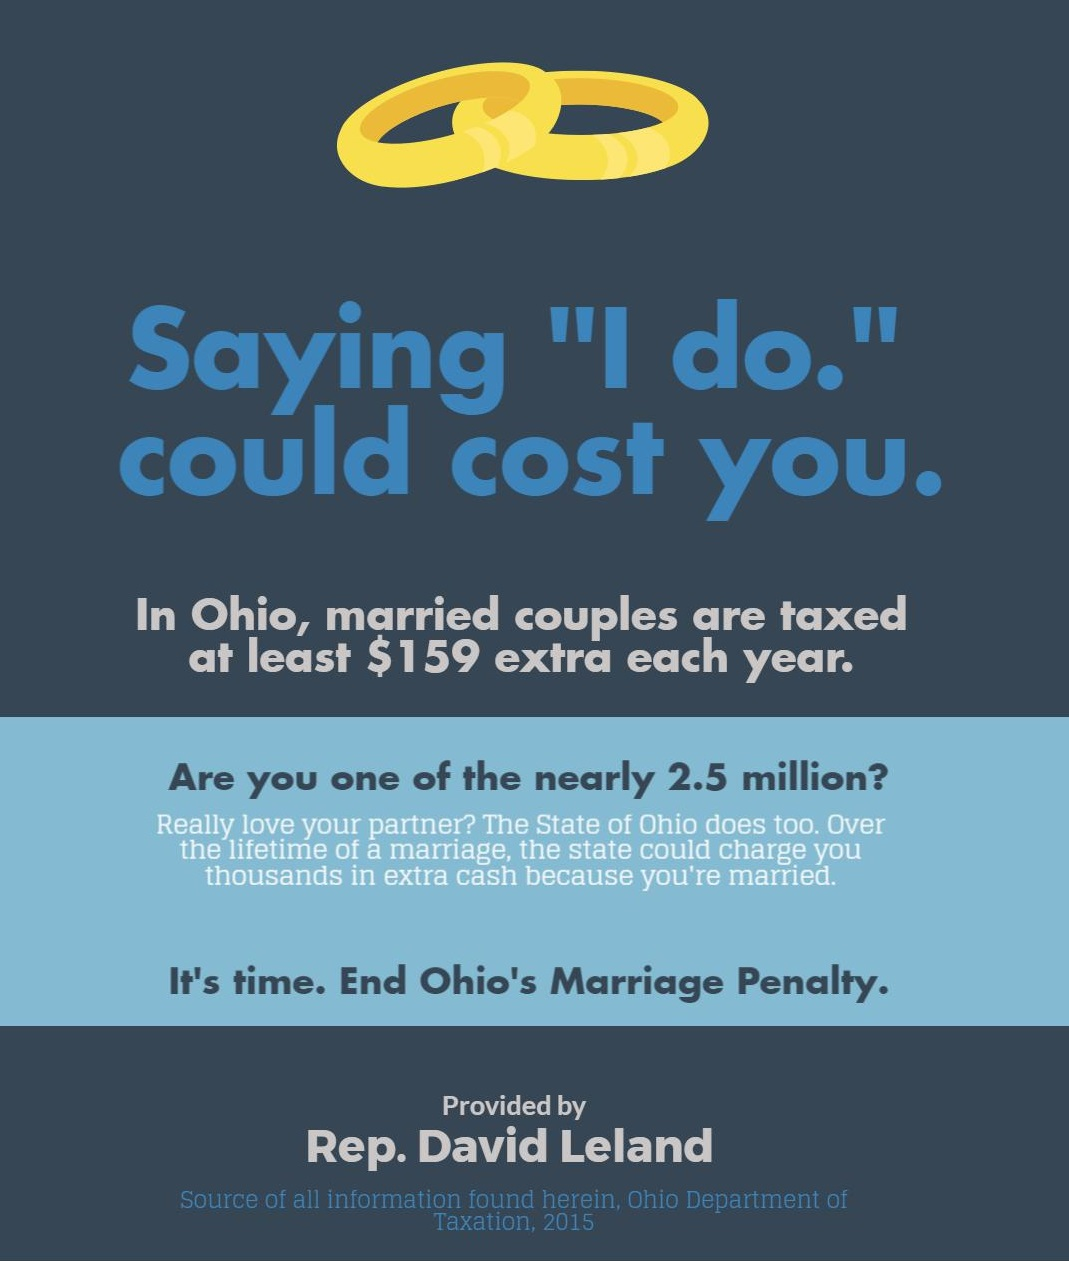 Ohio's Marriage Penalty Tax!